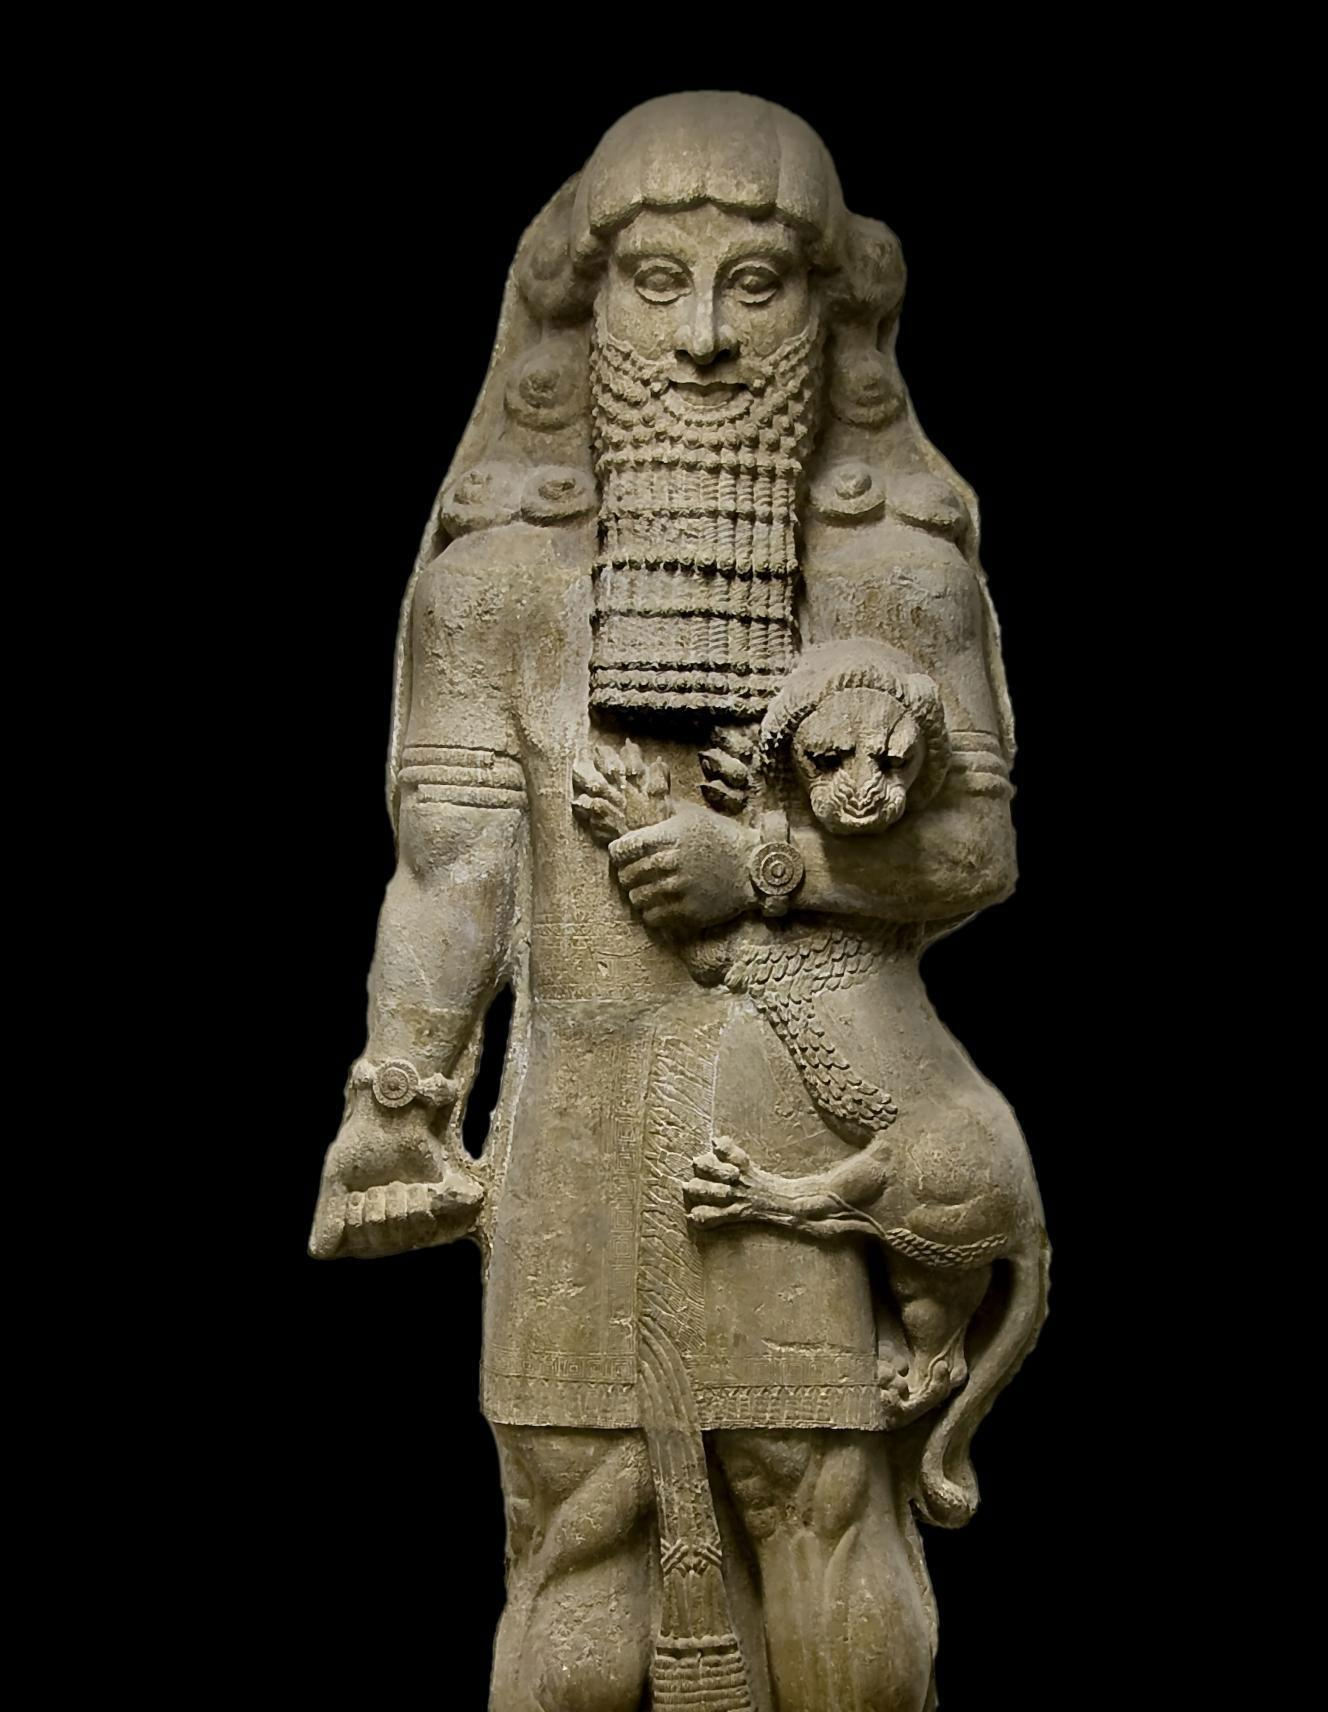 a character review of gilgamesh in the epic of gilgamesh Gilgamesh was the king of sumeria and a pawn of dahak when gilgamesh was fighting an army of pagans who were invading sumeria, his wife and child were killed.